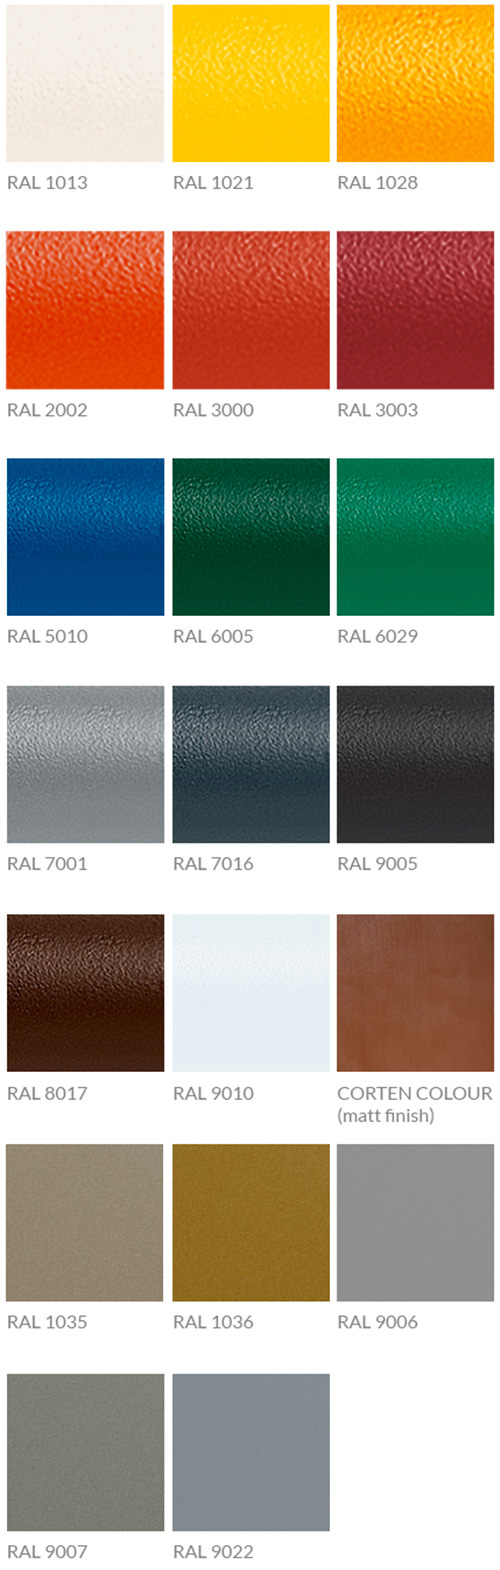 ral-500x1570